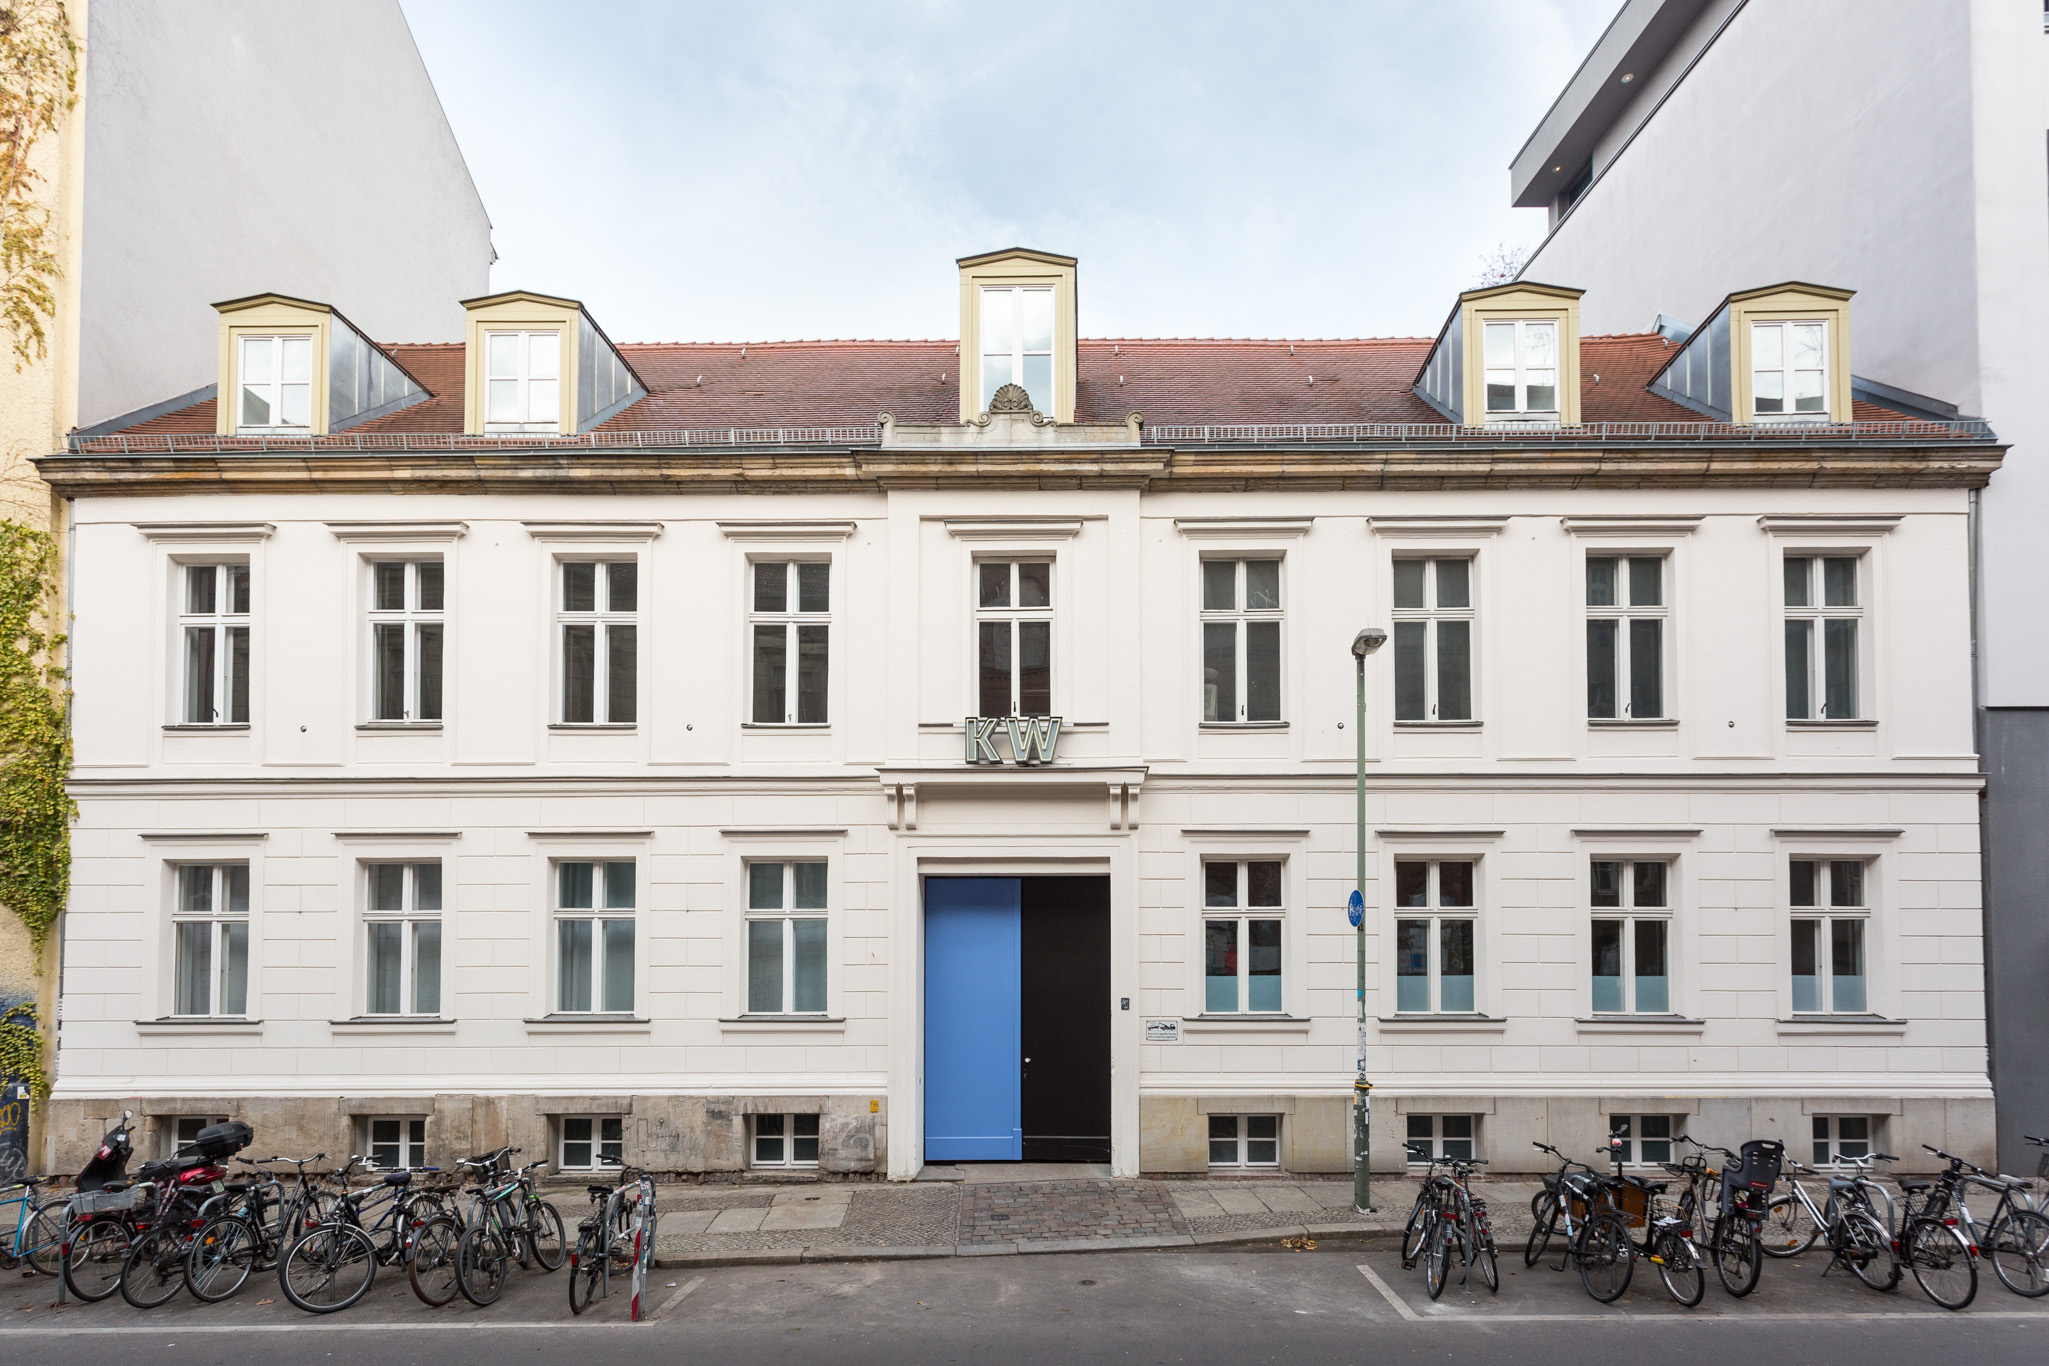 KW Institute for Contemporary Art. Photo: Philippe Van Snick.